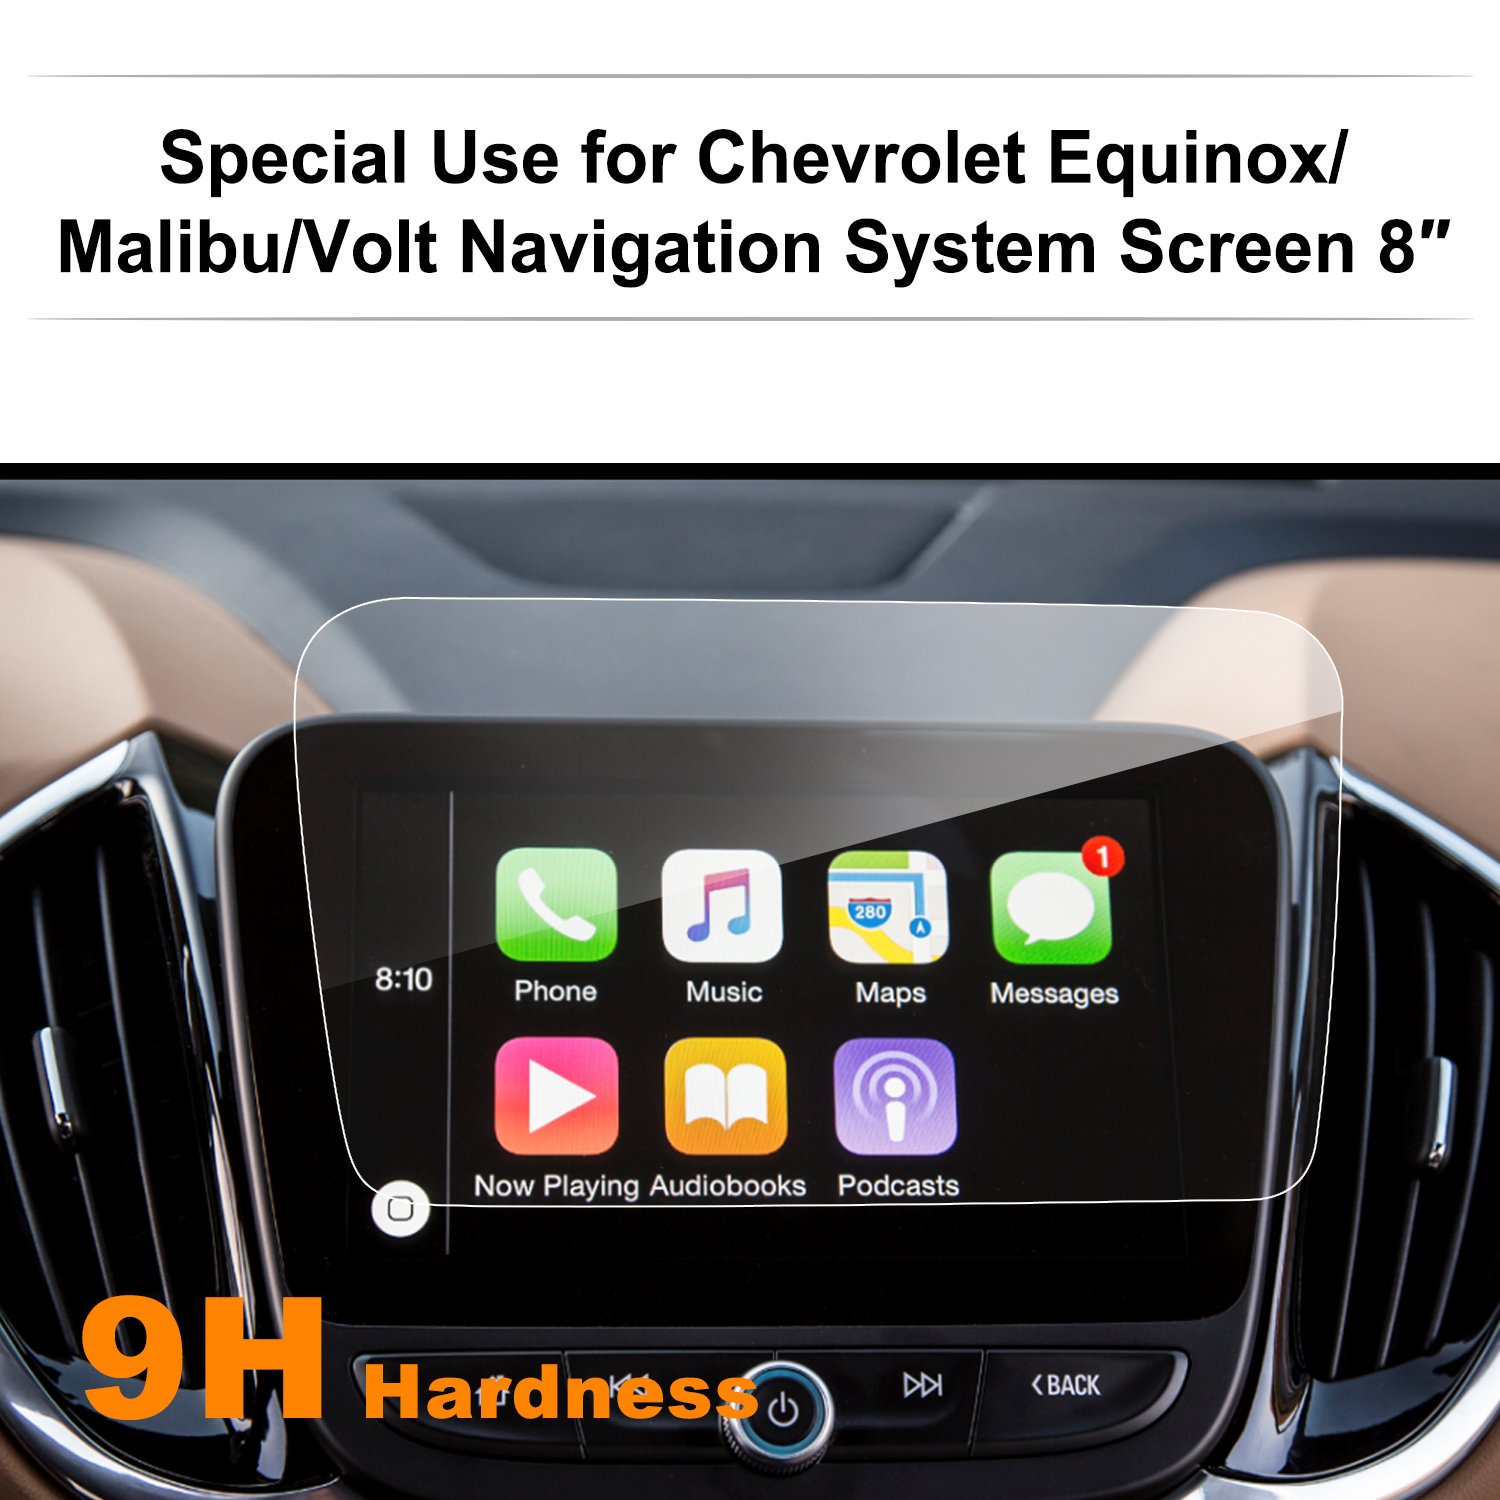 Chevrolet Volt/Malibu/Equinox 8-inch Car Navigation Screen Protector, LFOTPP [9H Hardness] Clear Tempered Glass in-Dash Screen Protector Center Touch Screen Protector Anti Scratch High Clarity LiFan CA Chevrolet 8tixing VoltMalibu